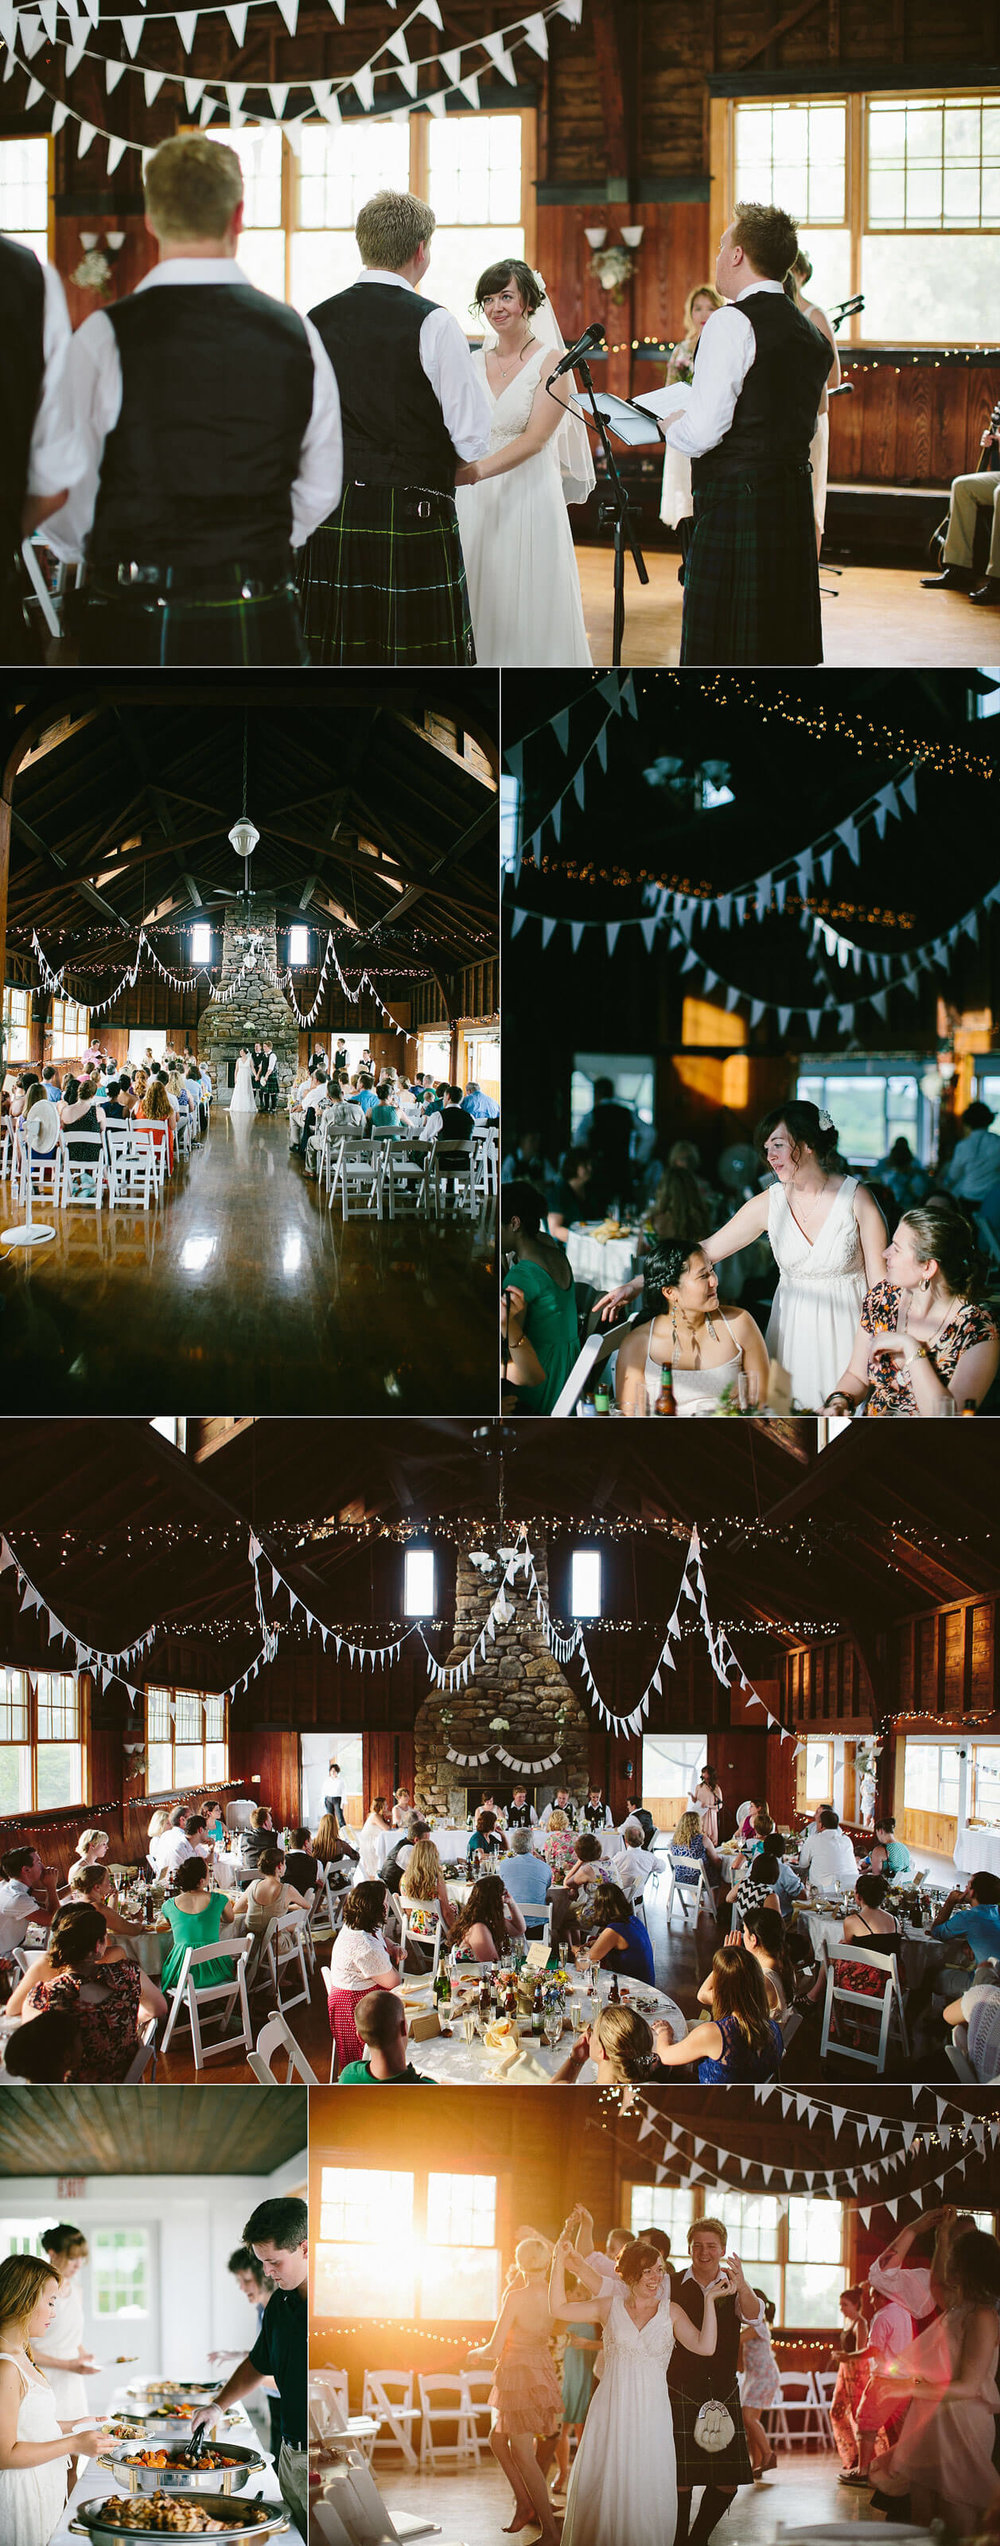 Click image to view venue post!